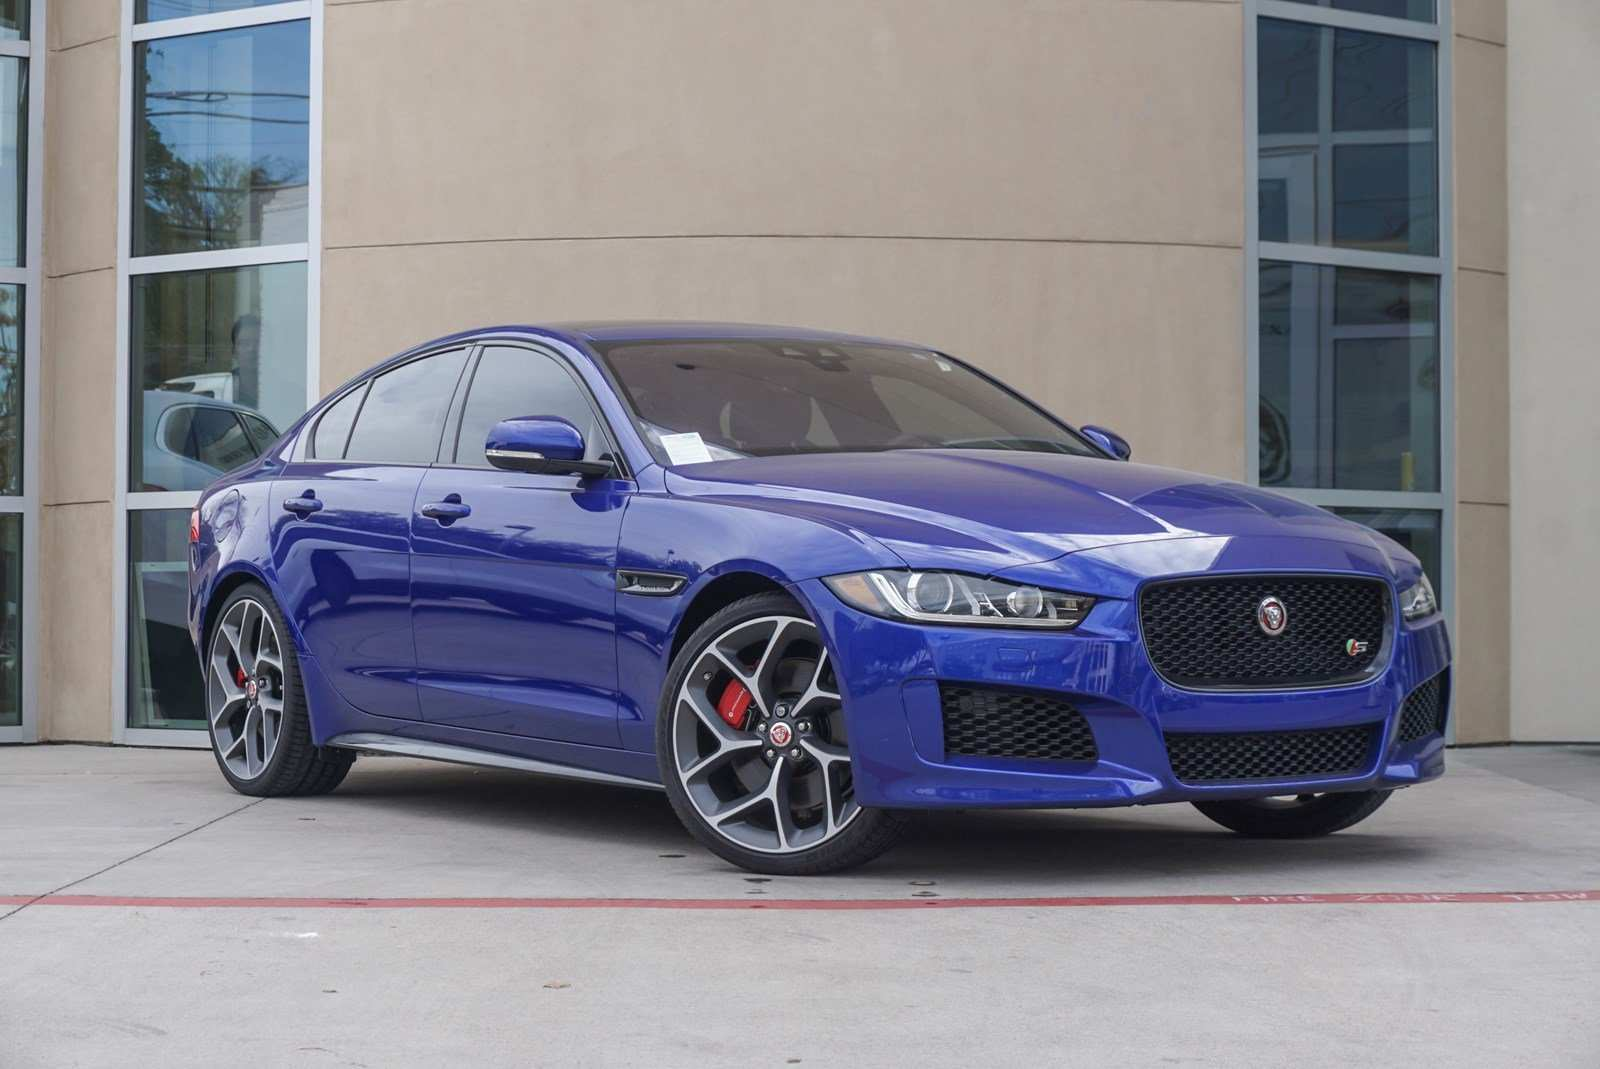 95 The Best Jaguar Xe 2019 Price Design And Review